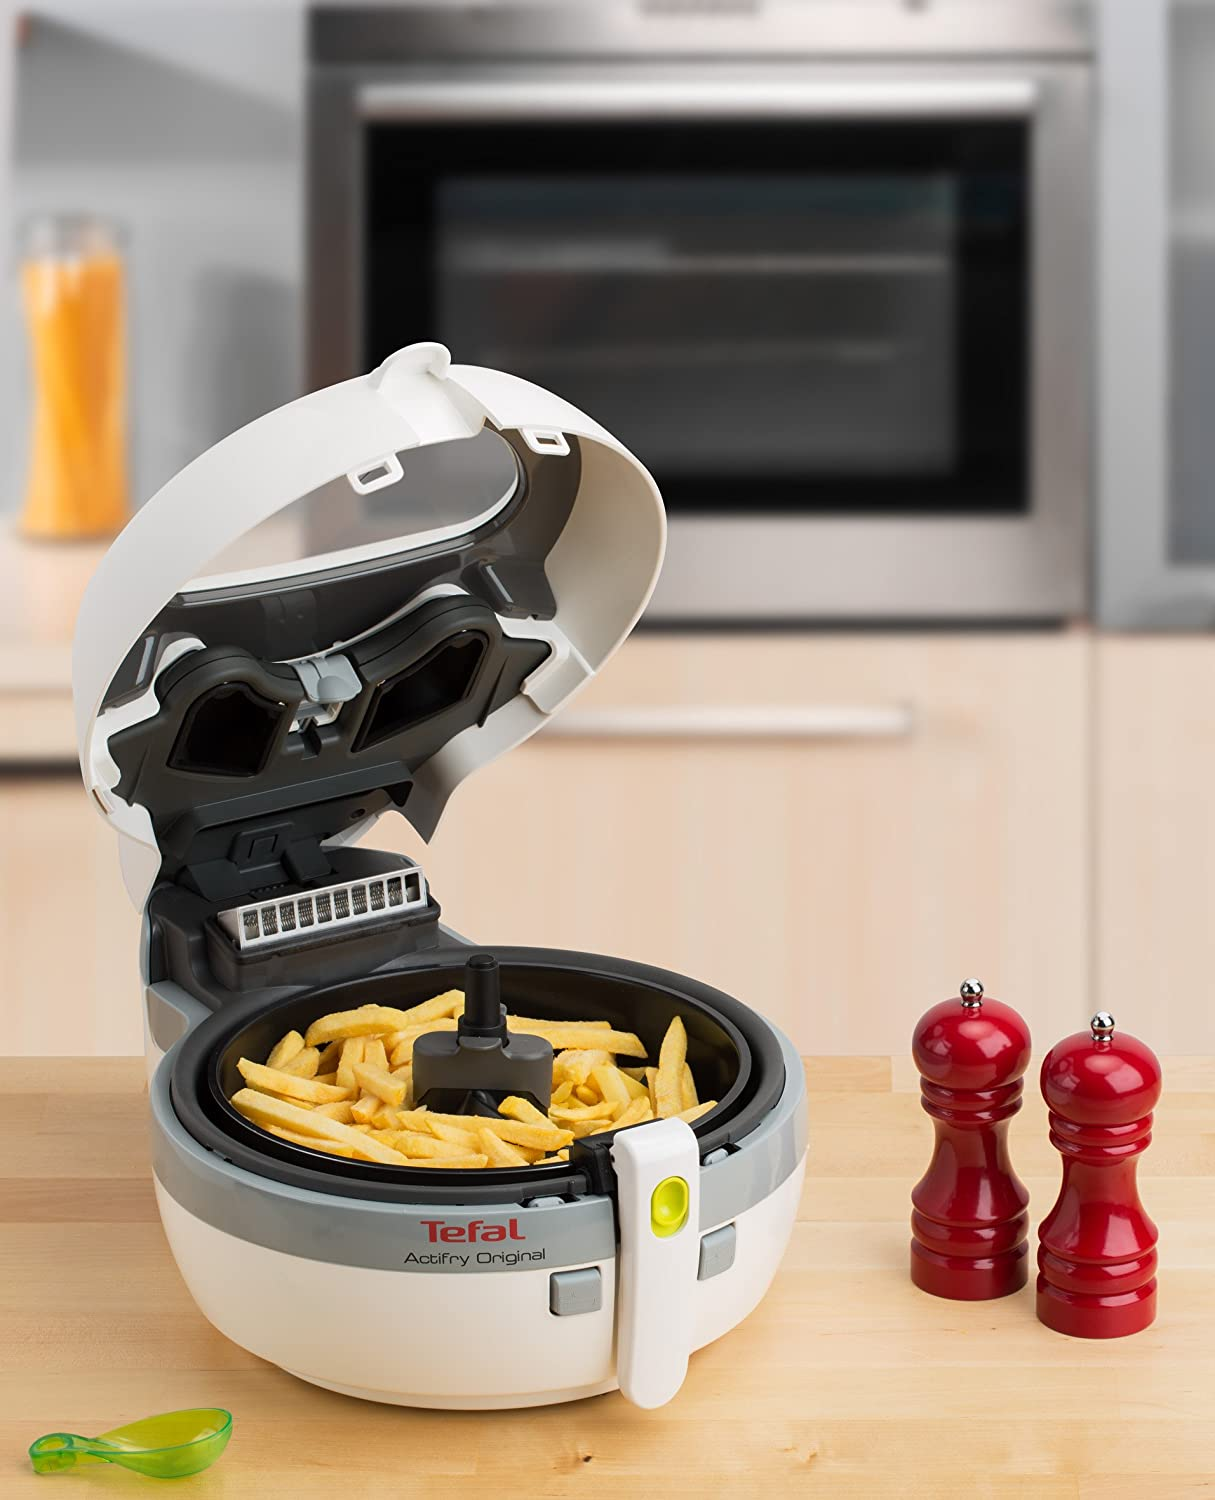 Amazon.com: Tefal fz7100 Actifry: Kitchen & Dining